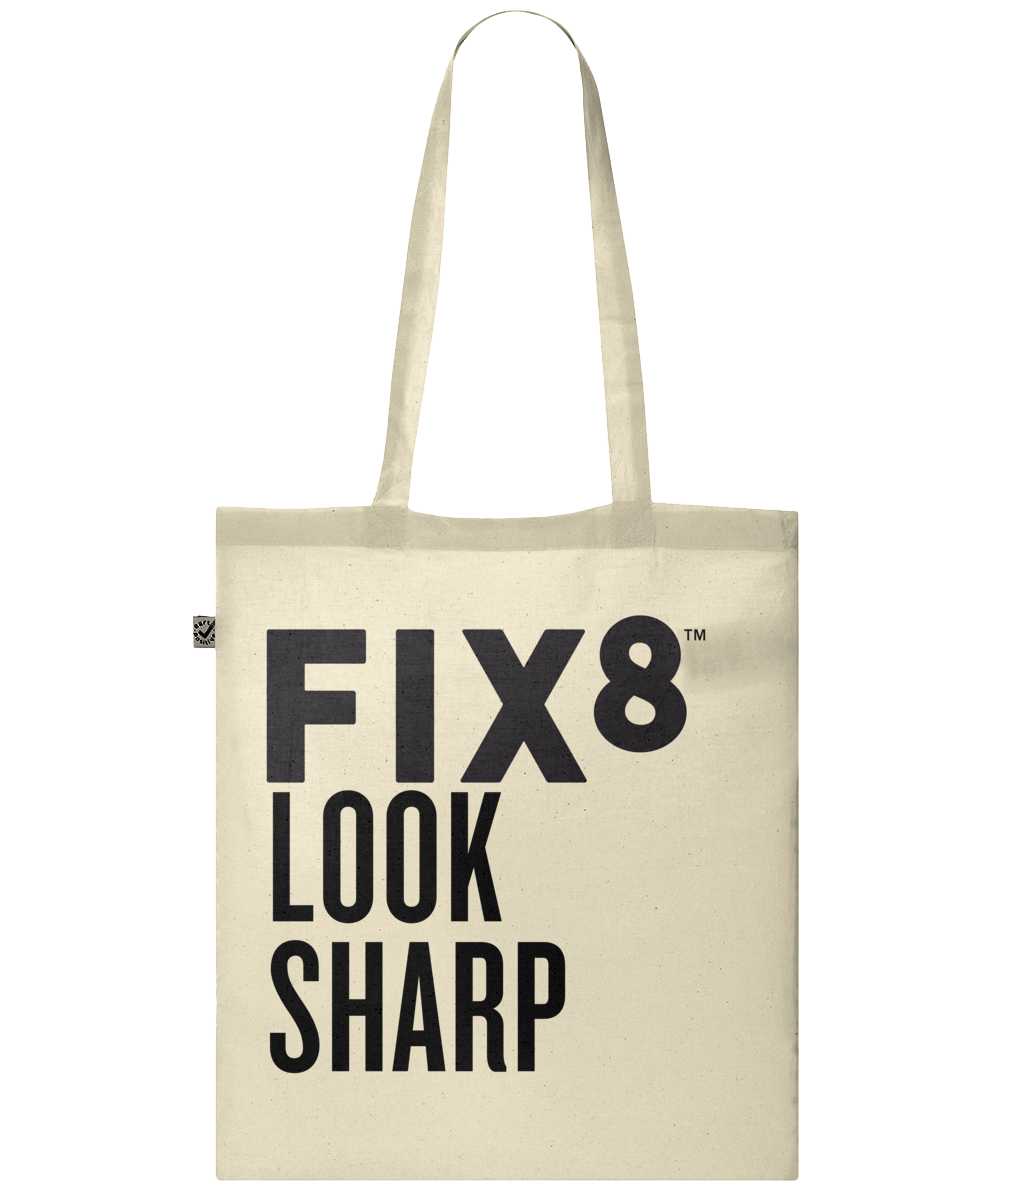 Look Sharp Organic Cotton Tote Bag - Fix8